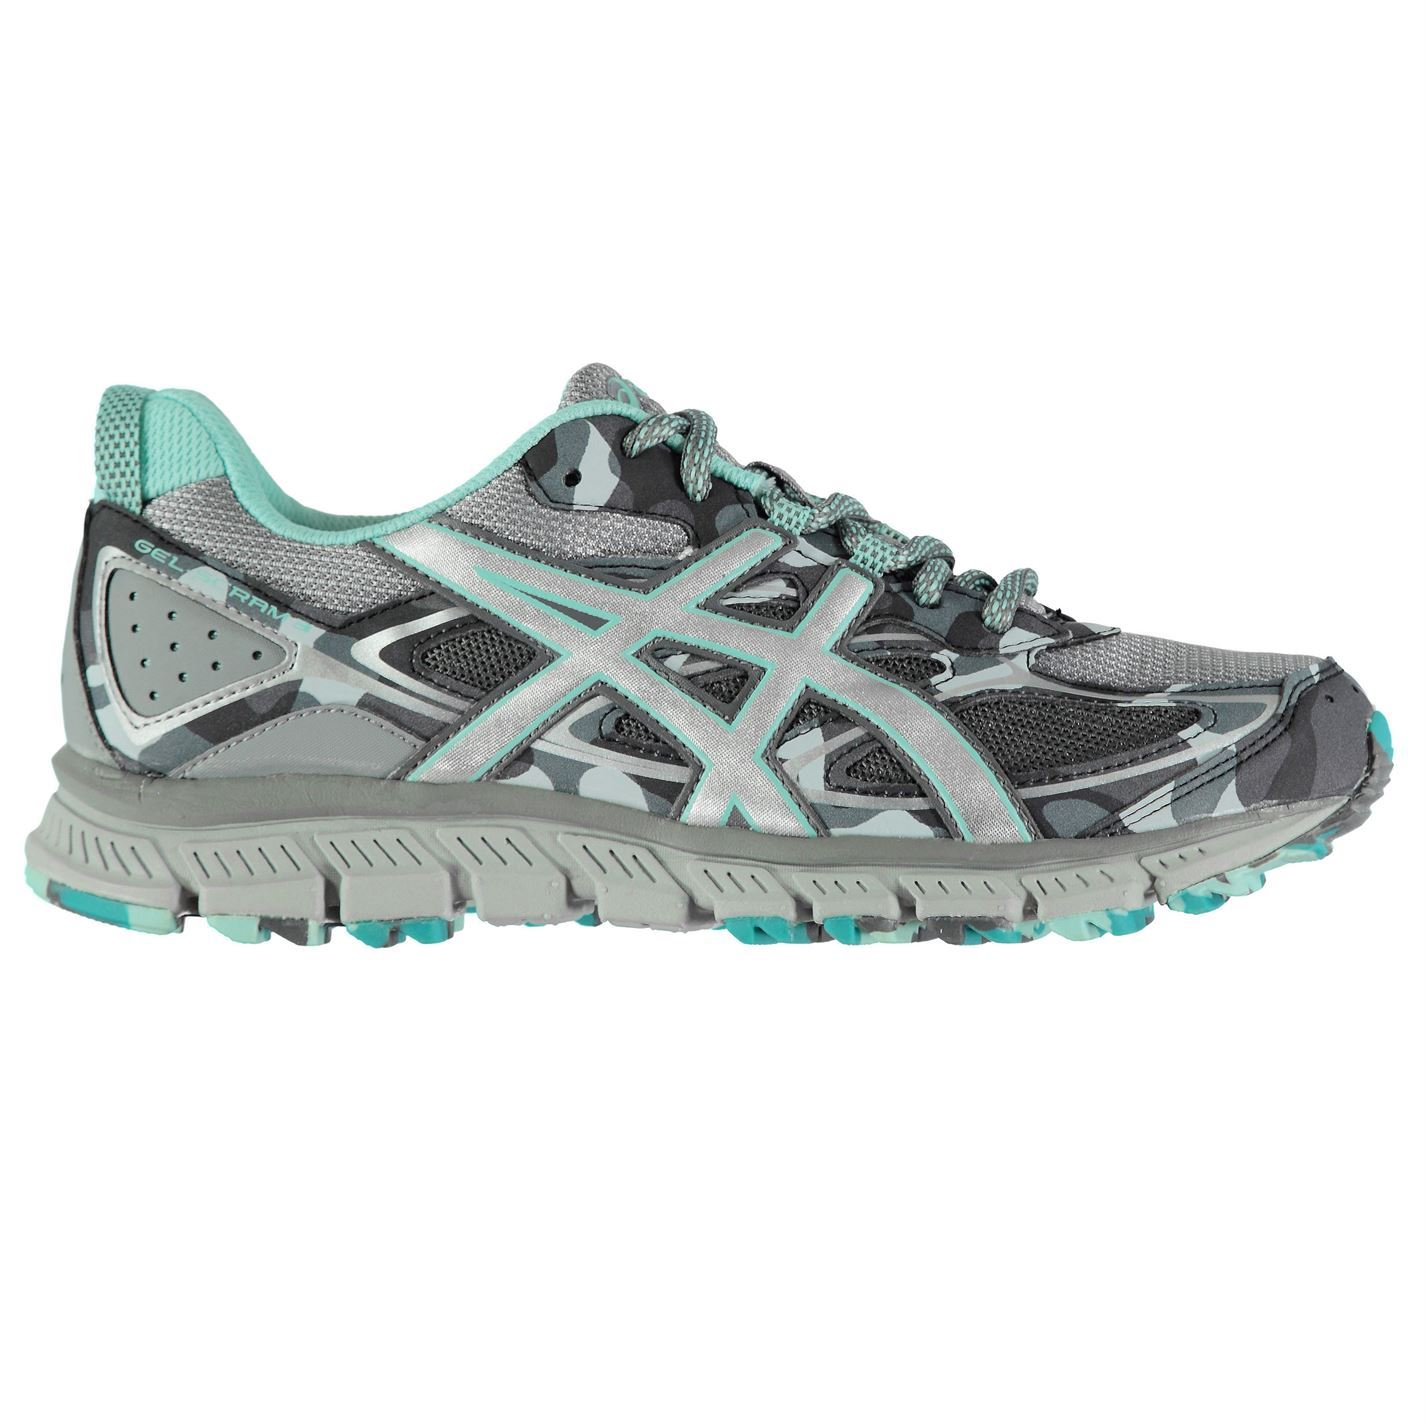 new york 3df98 e5a2c Details about Asics Gel Scram 3 Running Shoes Womens Grey/Blue Run Jogging  Trainers Sneakers